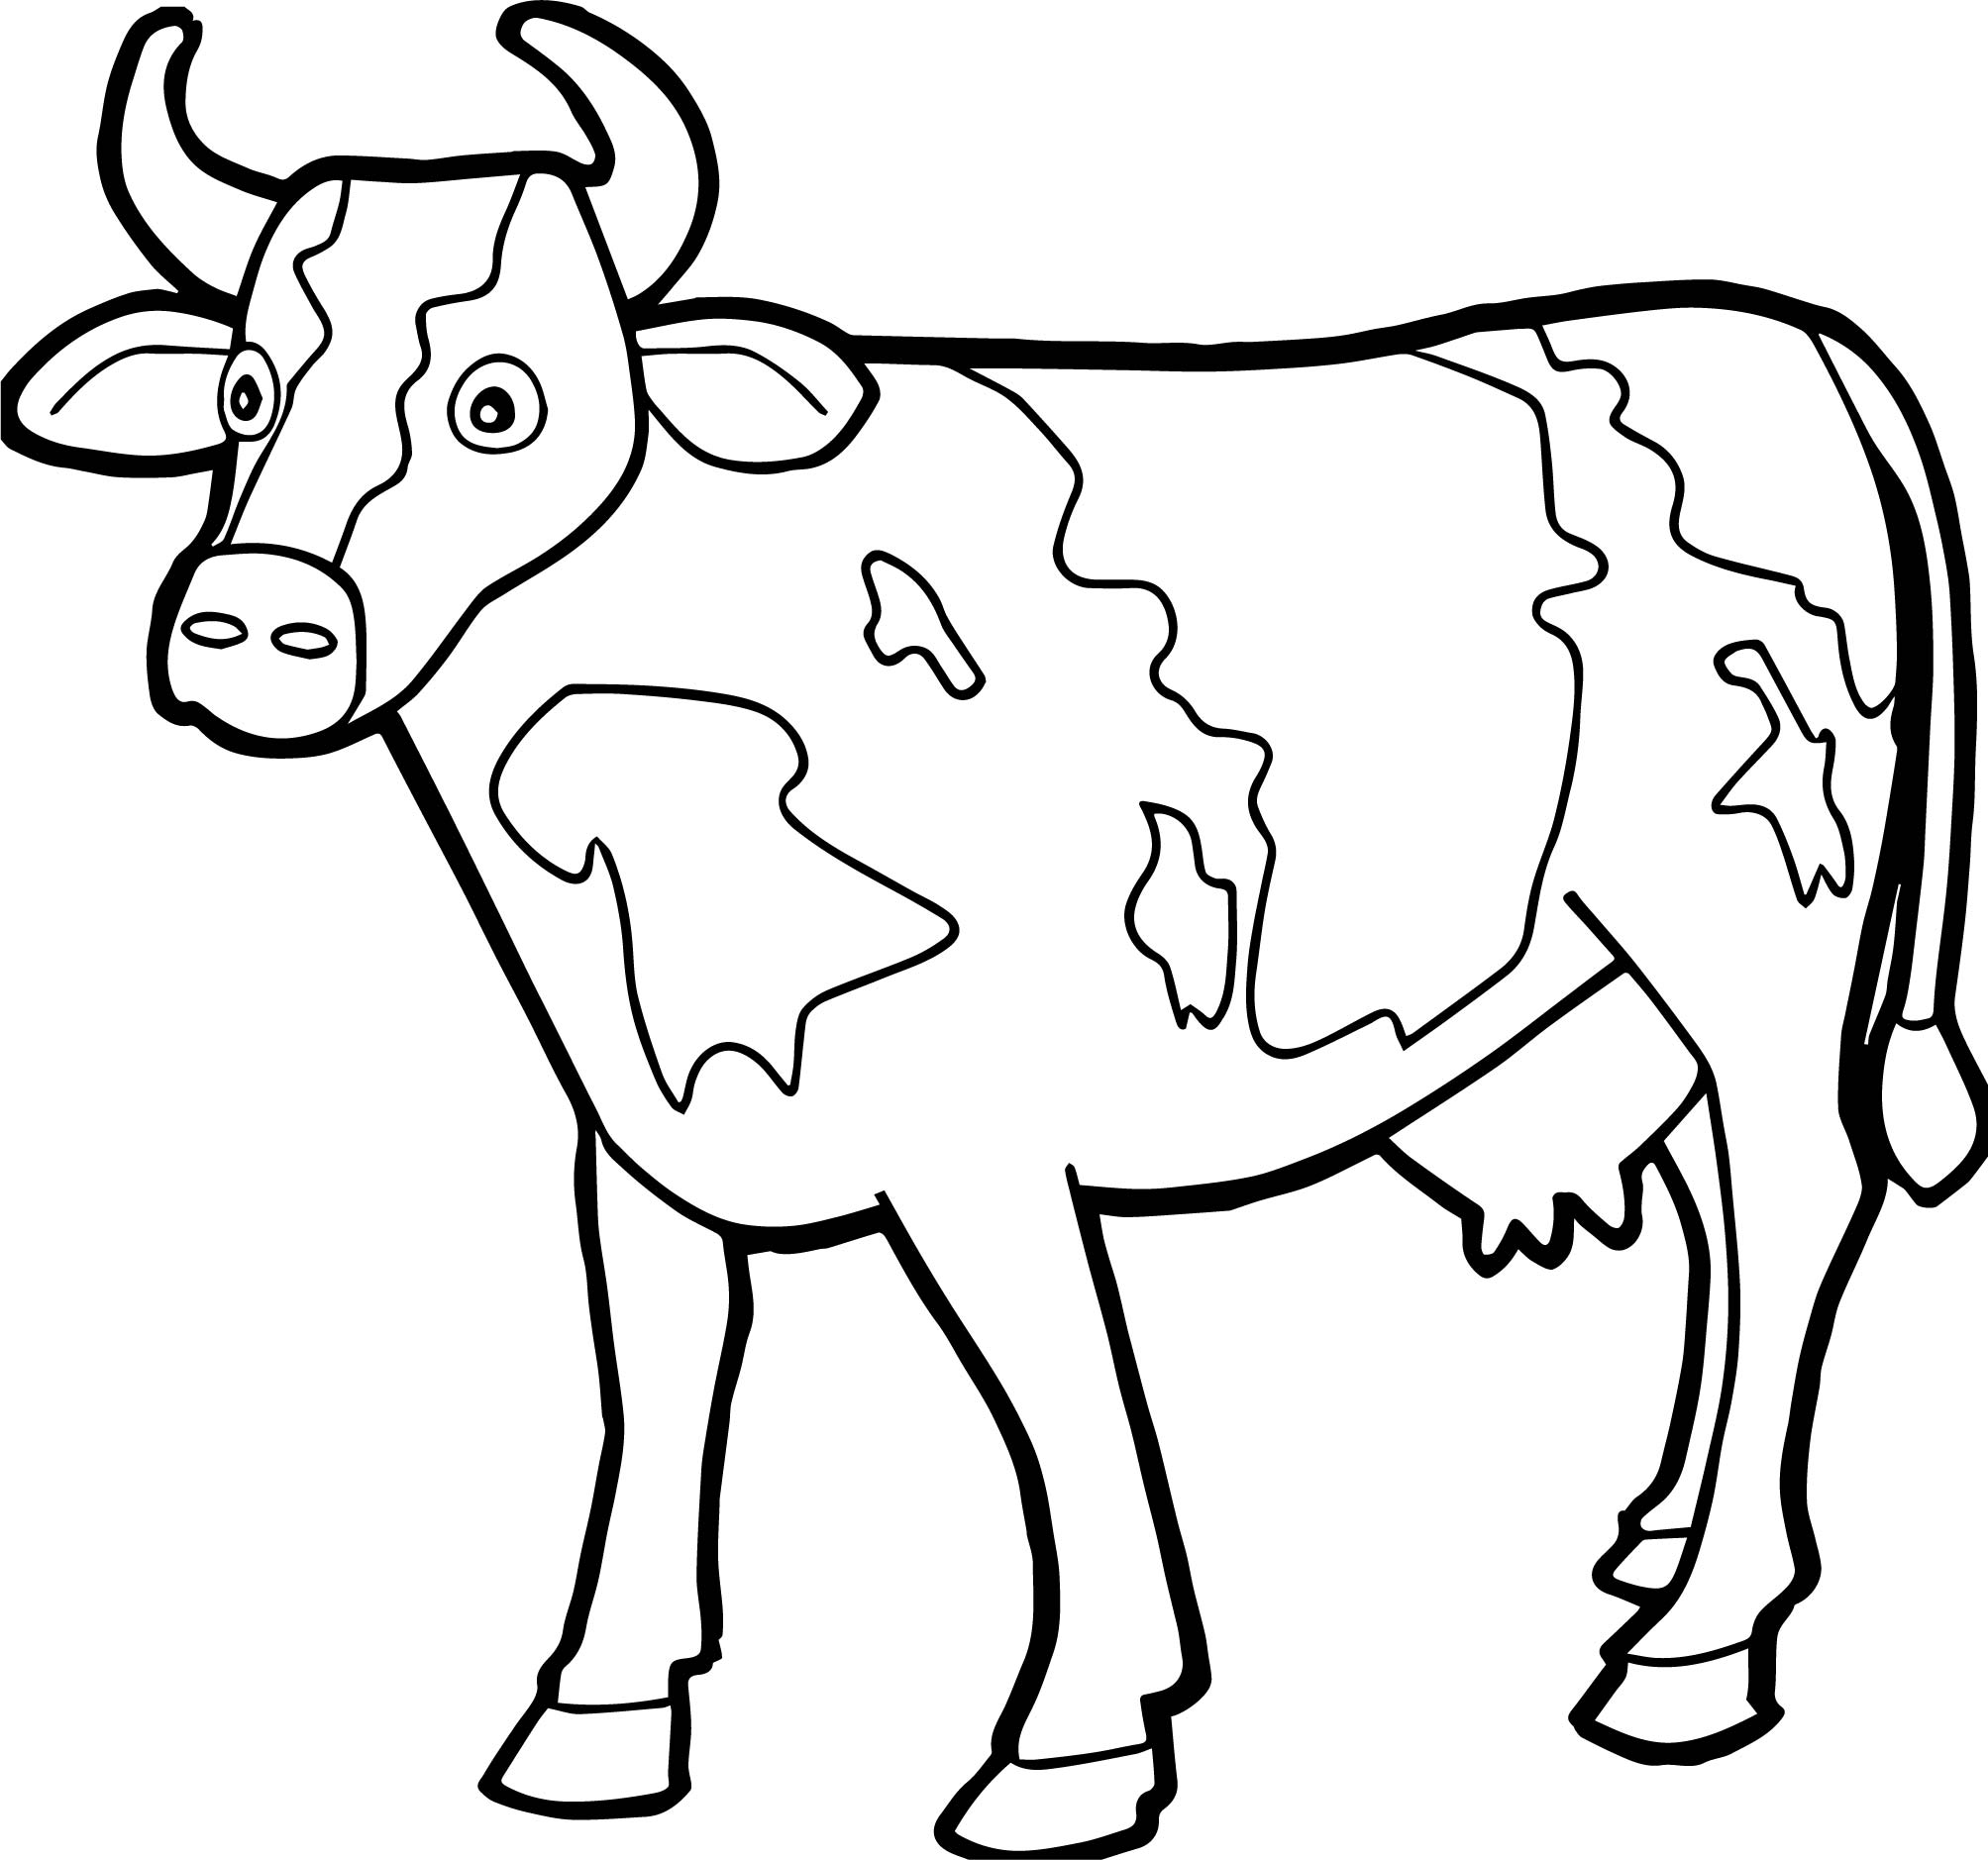 farm animal staying cow coloring page - Cow Coloring Page